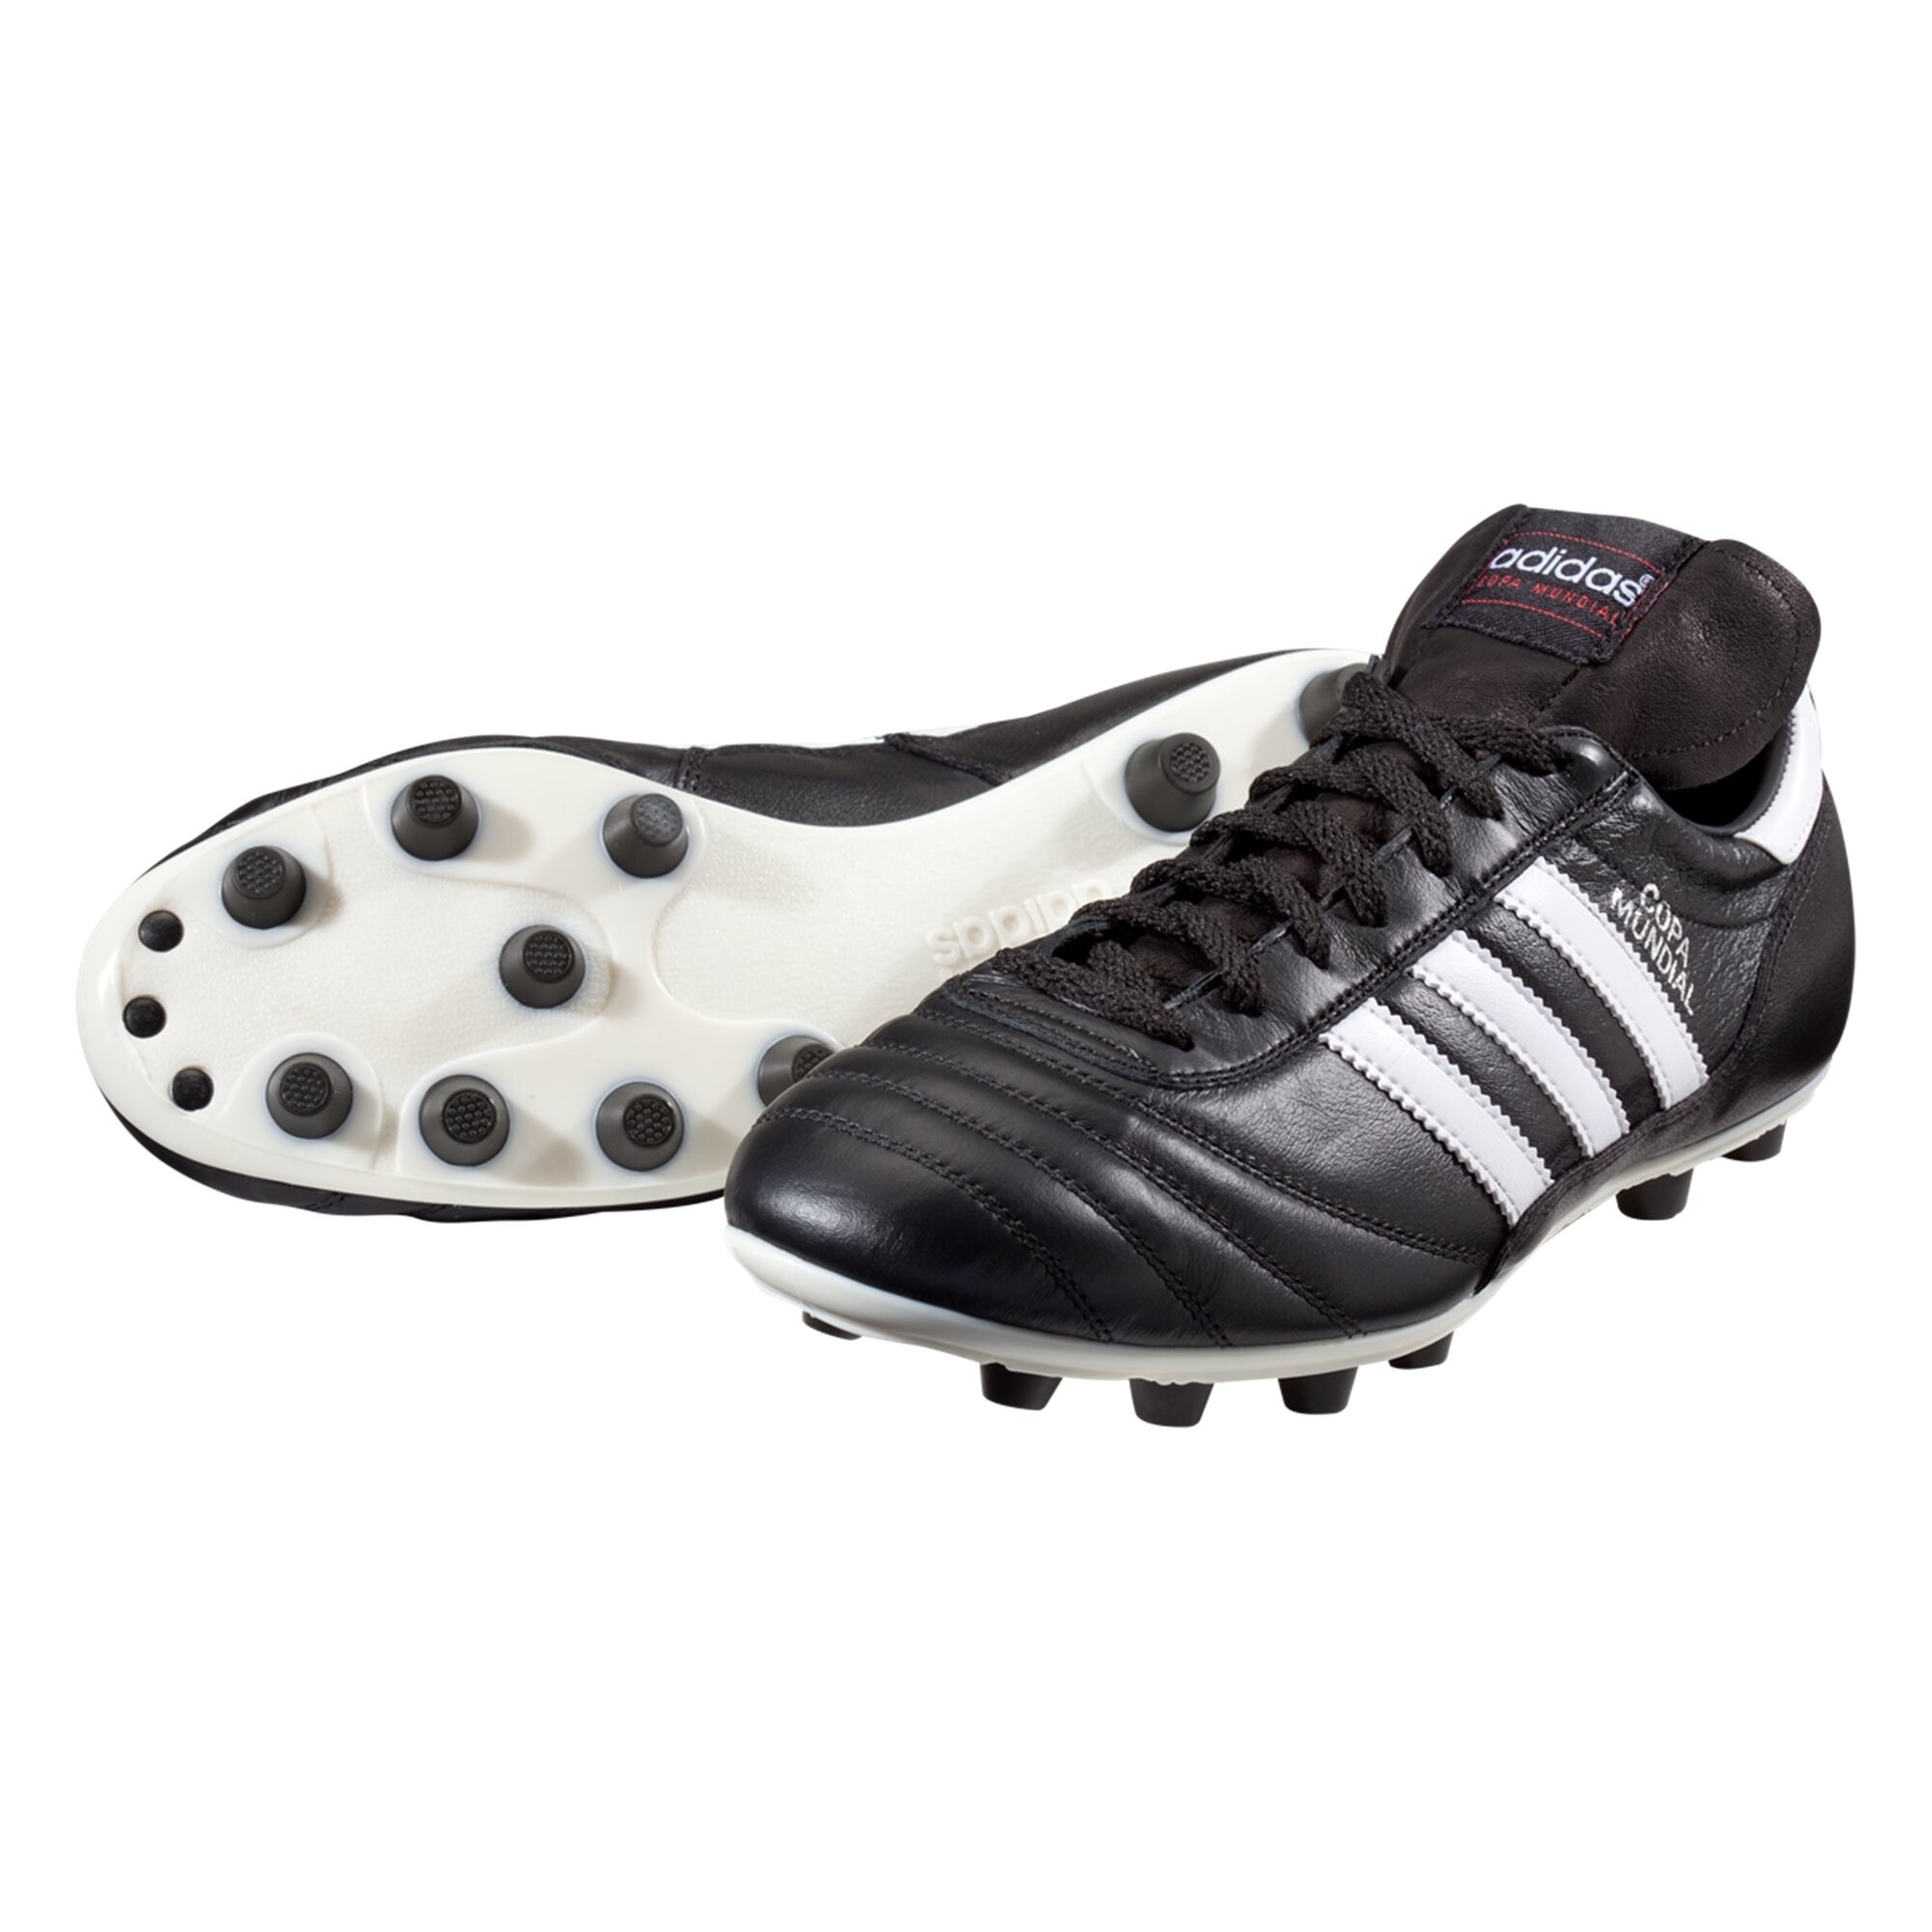 adidas Copa Mundial Soccer Cleat - Black